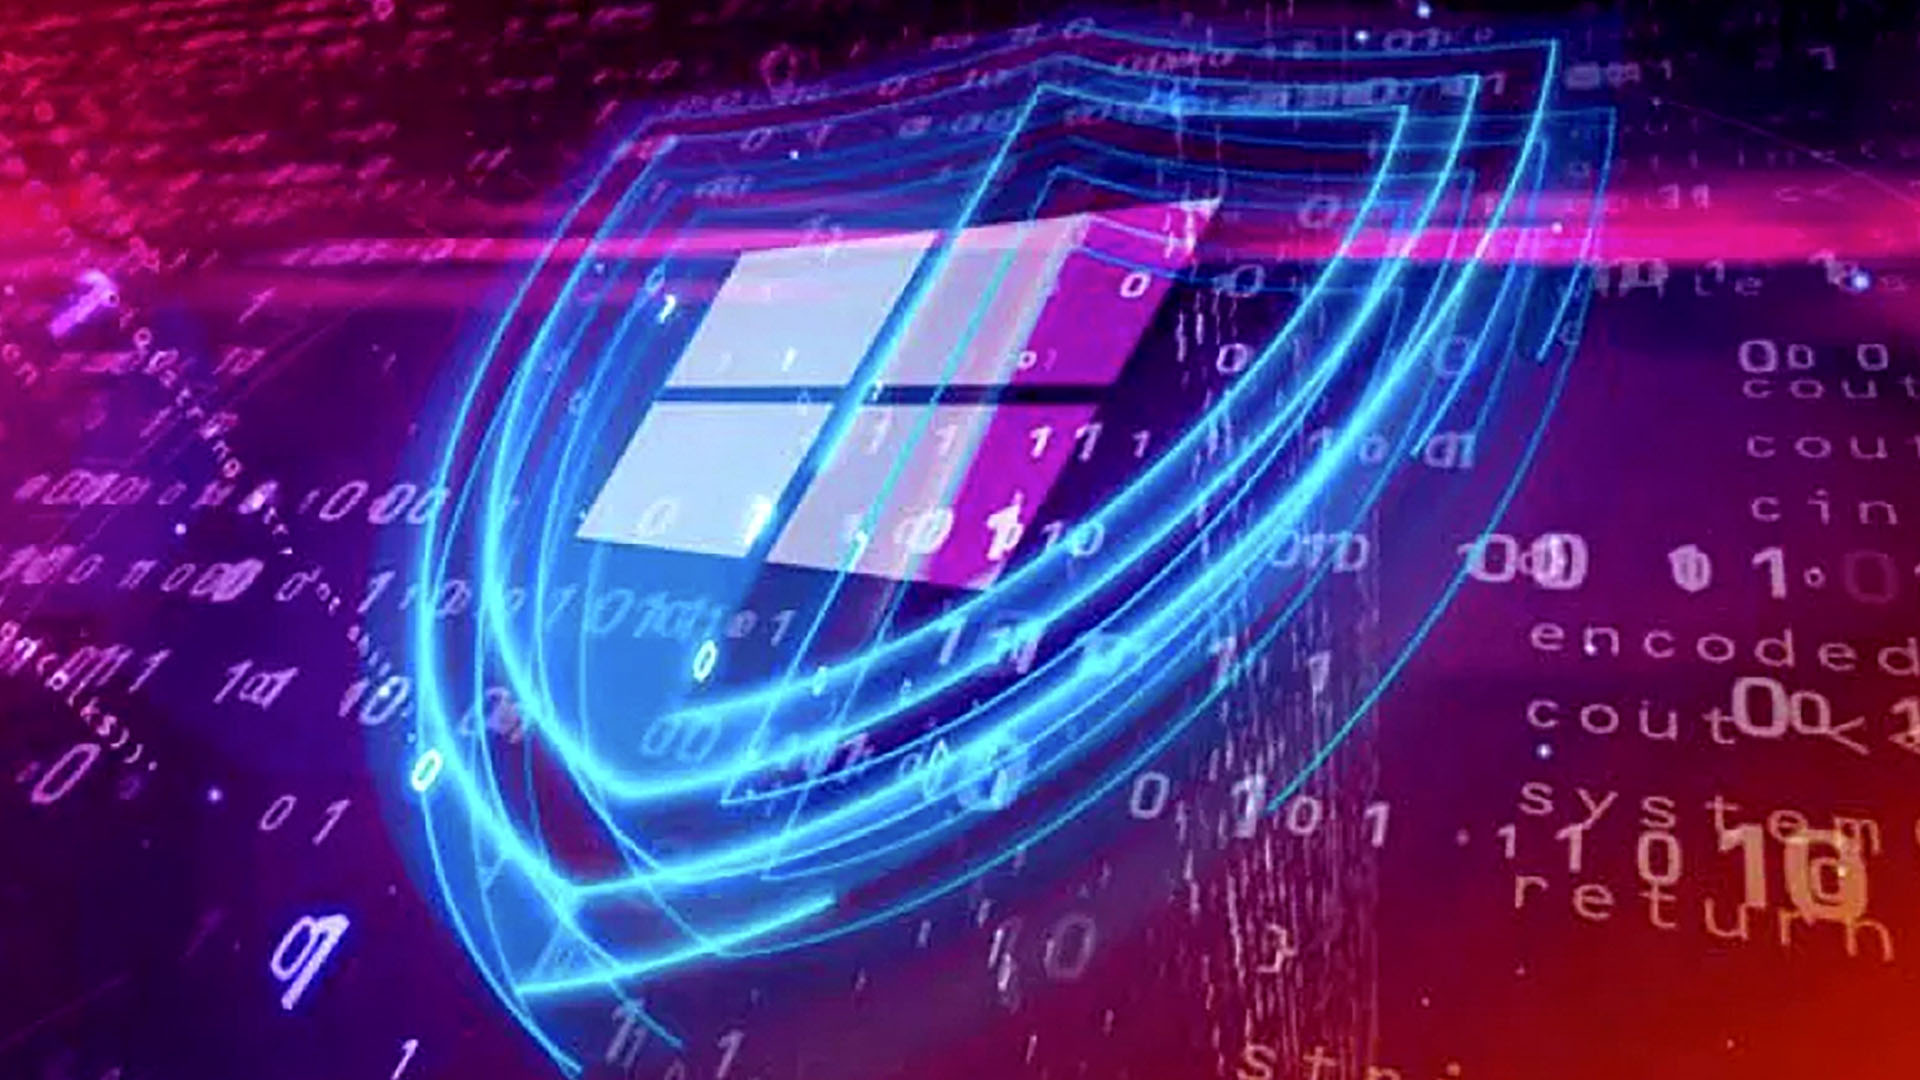 parches de seguridad de junio de 2019 para Windows y Adobe